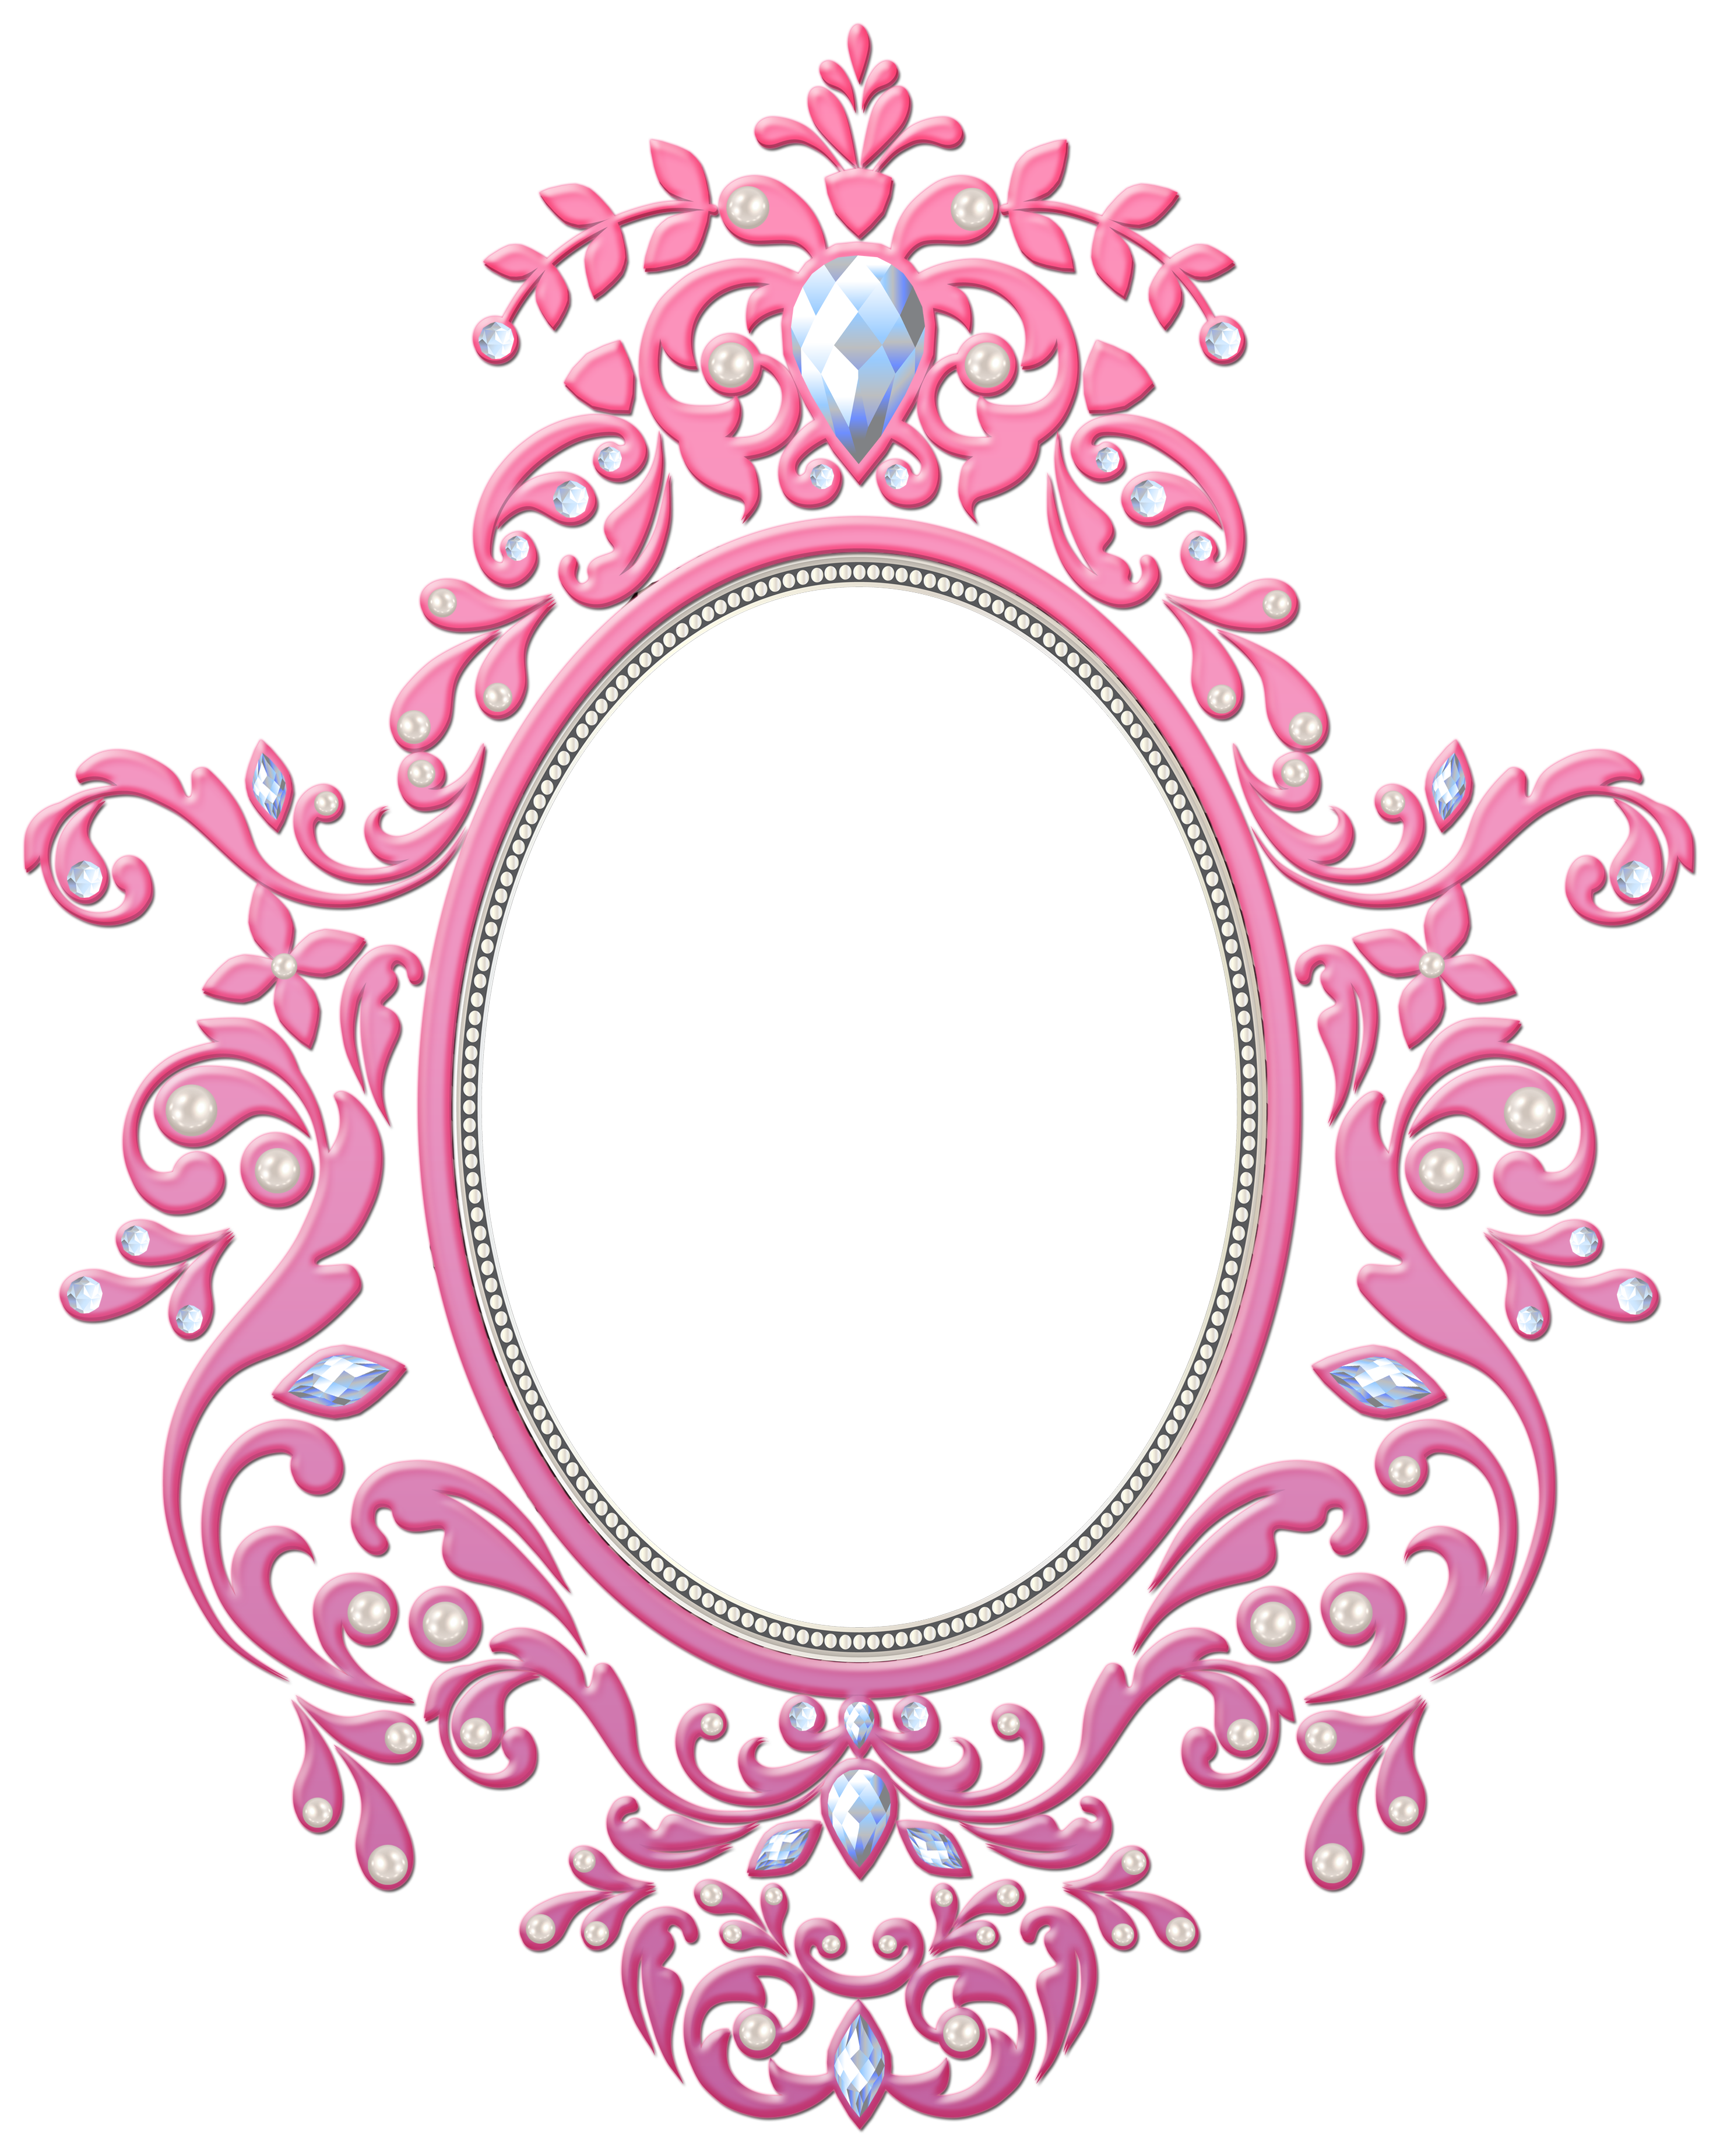 freeuse Frame clipart gallery . Transparent pink decorative